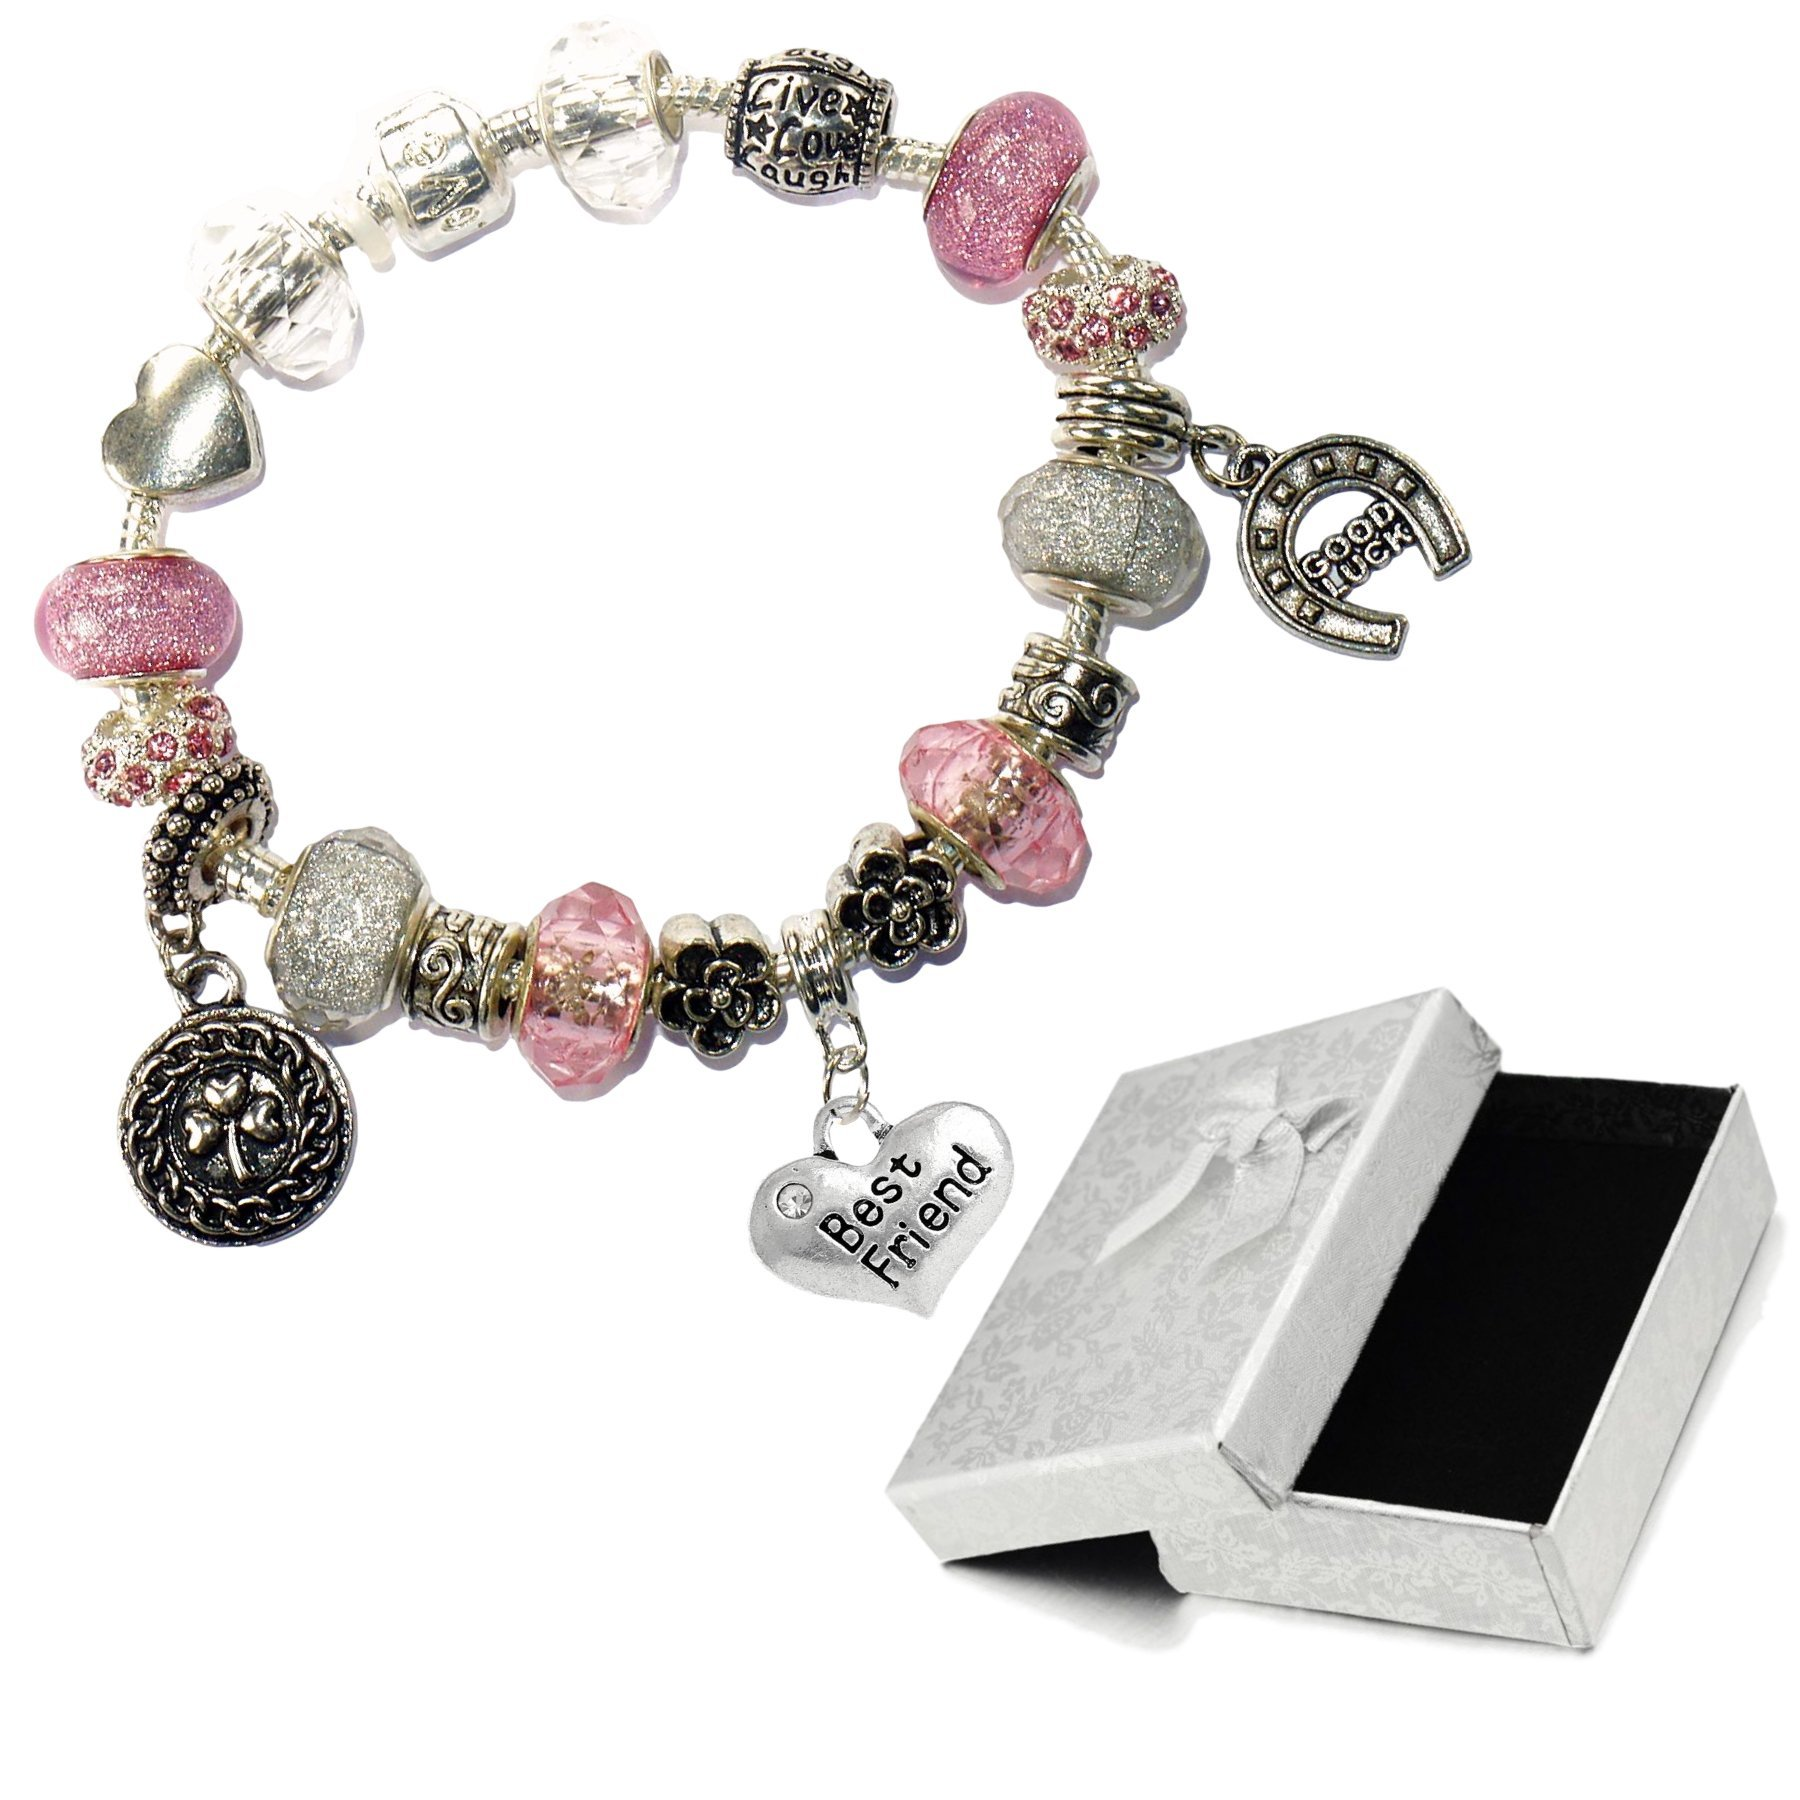 Charm Buddy Best Friend Pink Silver Crystal Good Luck Pandora Style Bracelet With Charms Gift Box